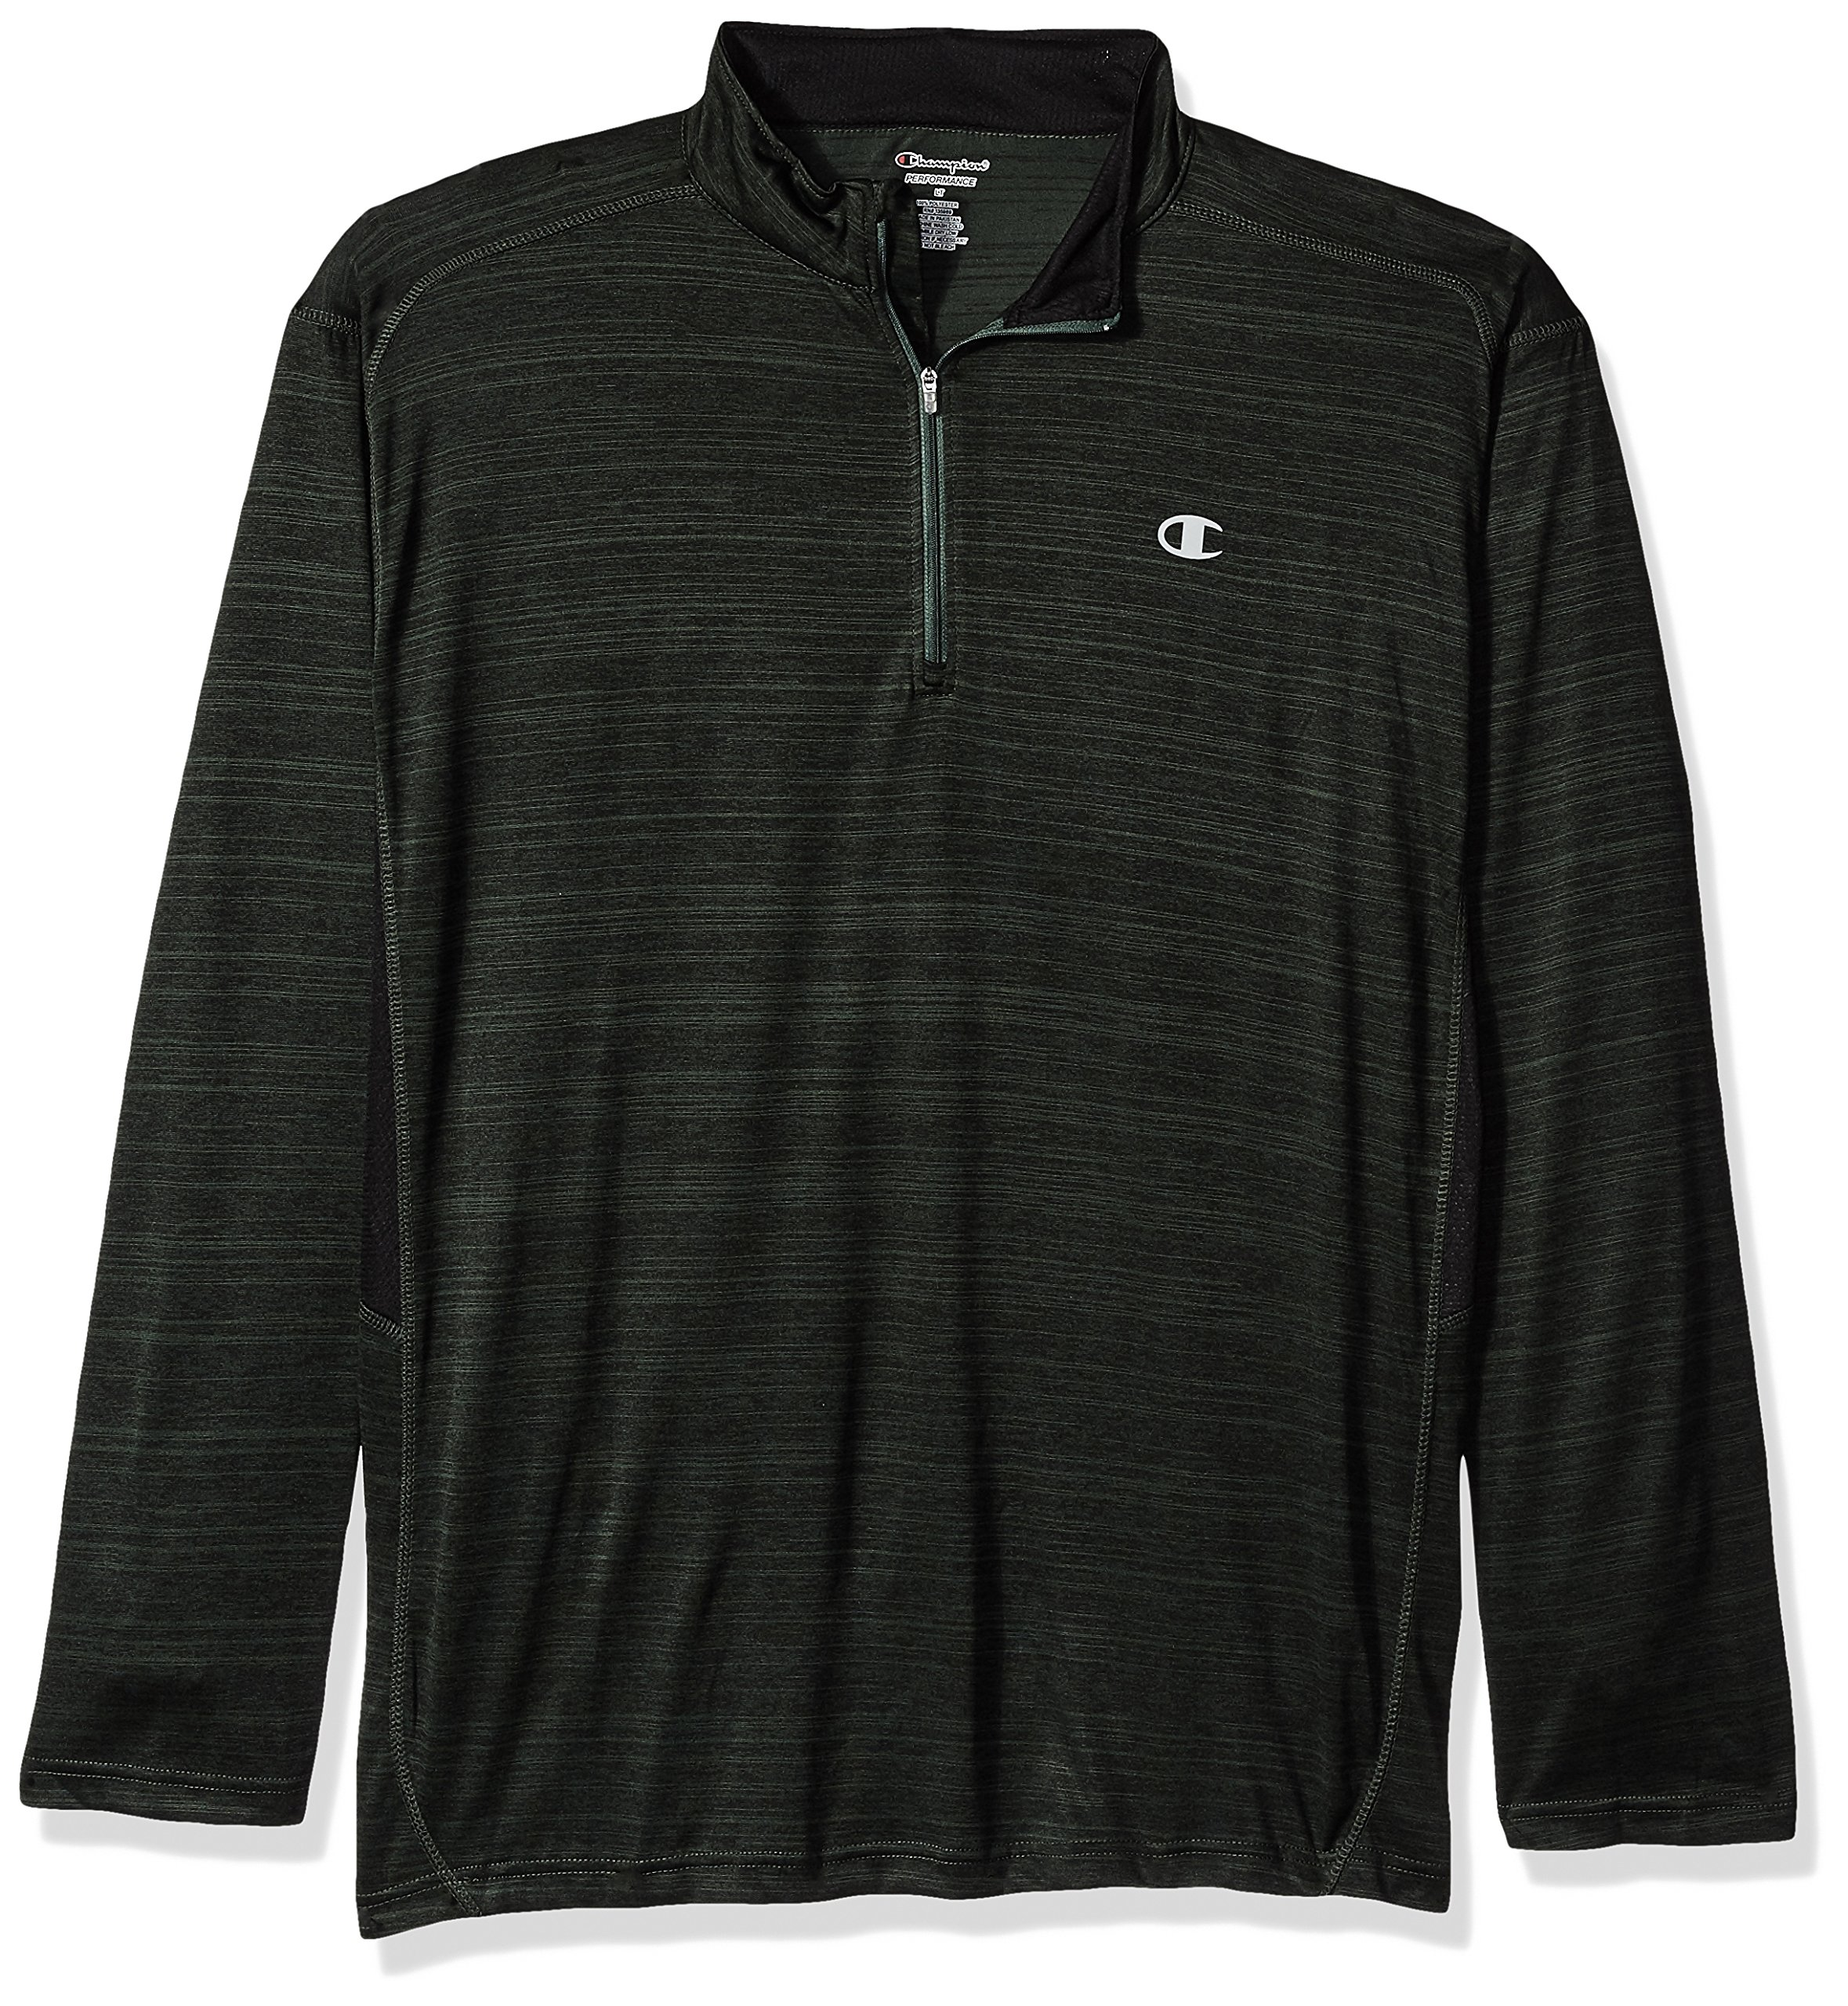 Champion Men's Big and Tall 1/4 Zip Pullover with Lc c, Forest/Black, LT by Champion